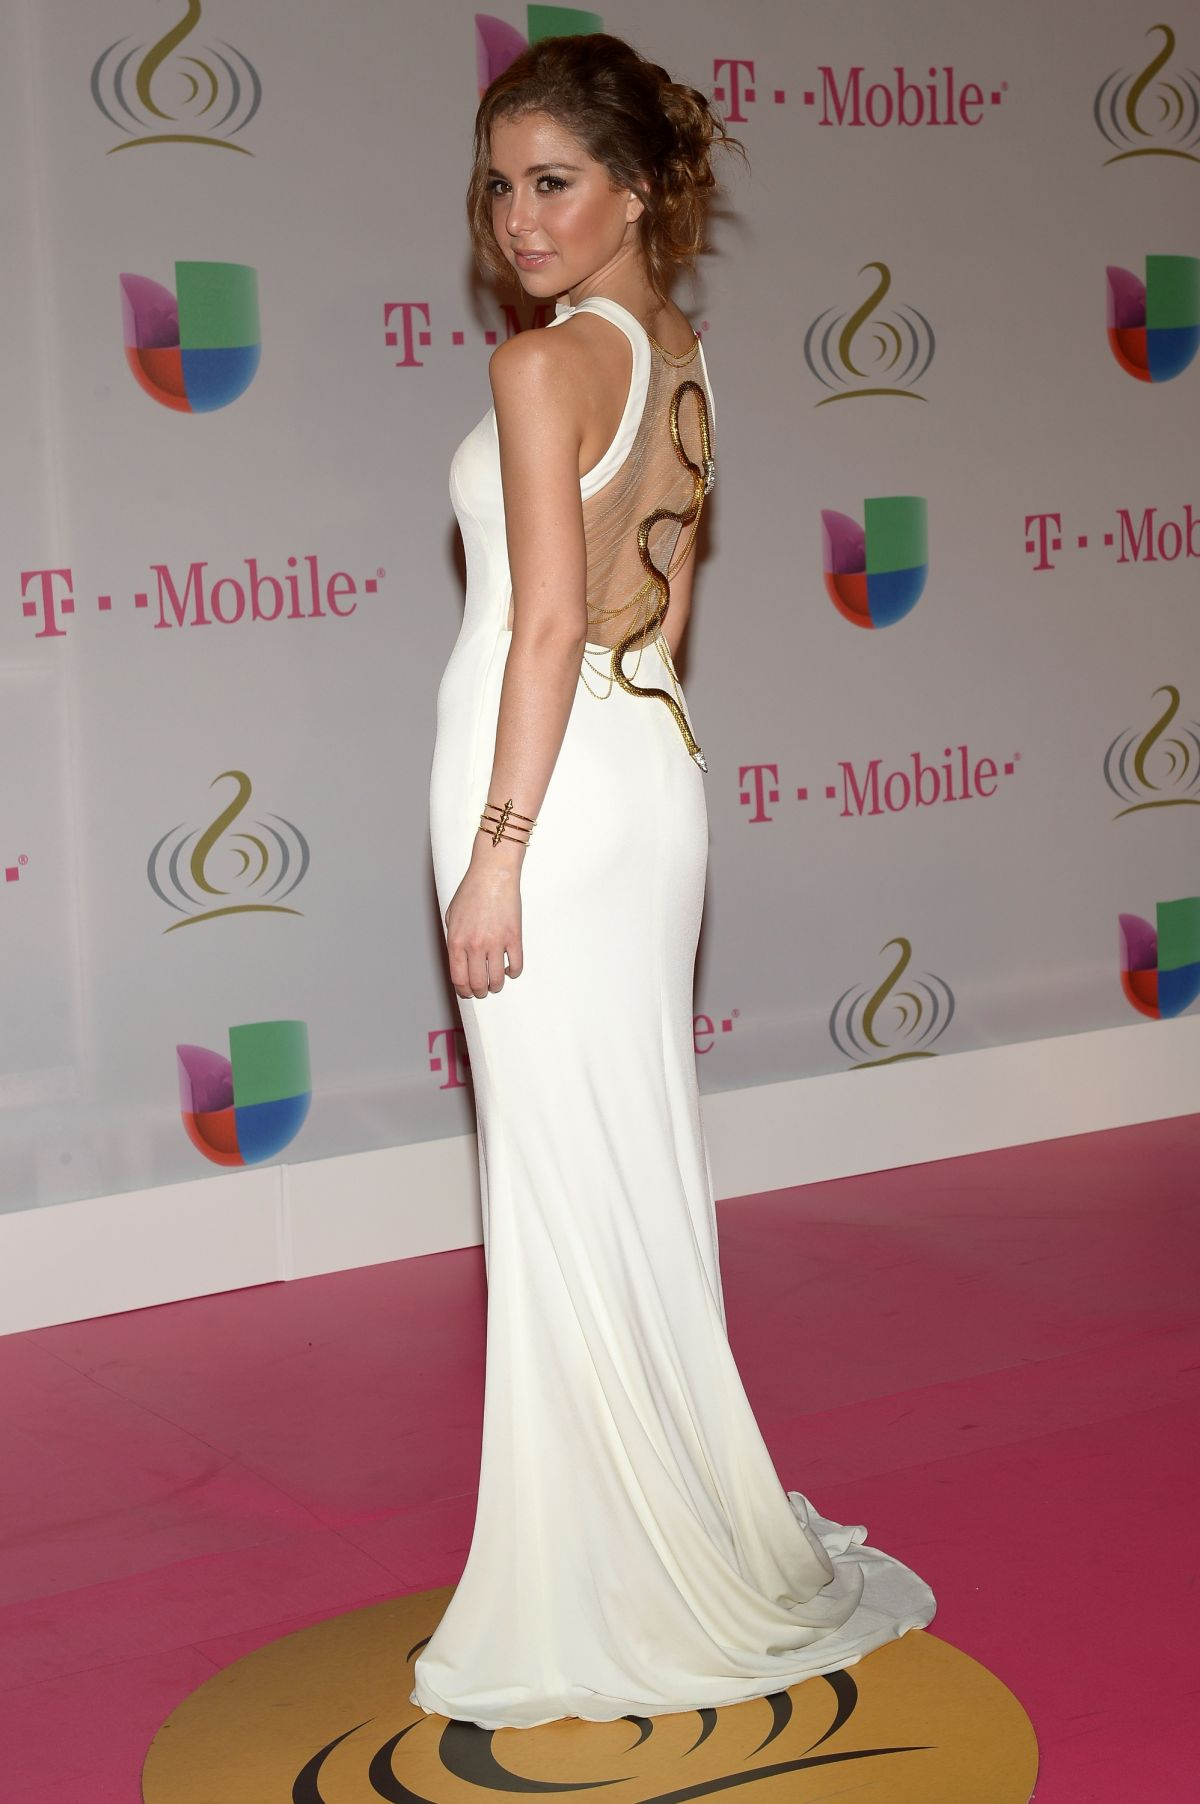 MAKENZIE VEGA at Premio Lo Nuestro Awards in Miami